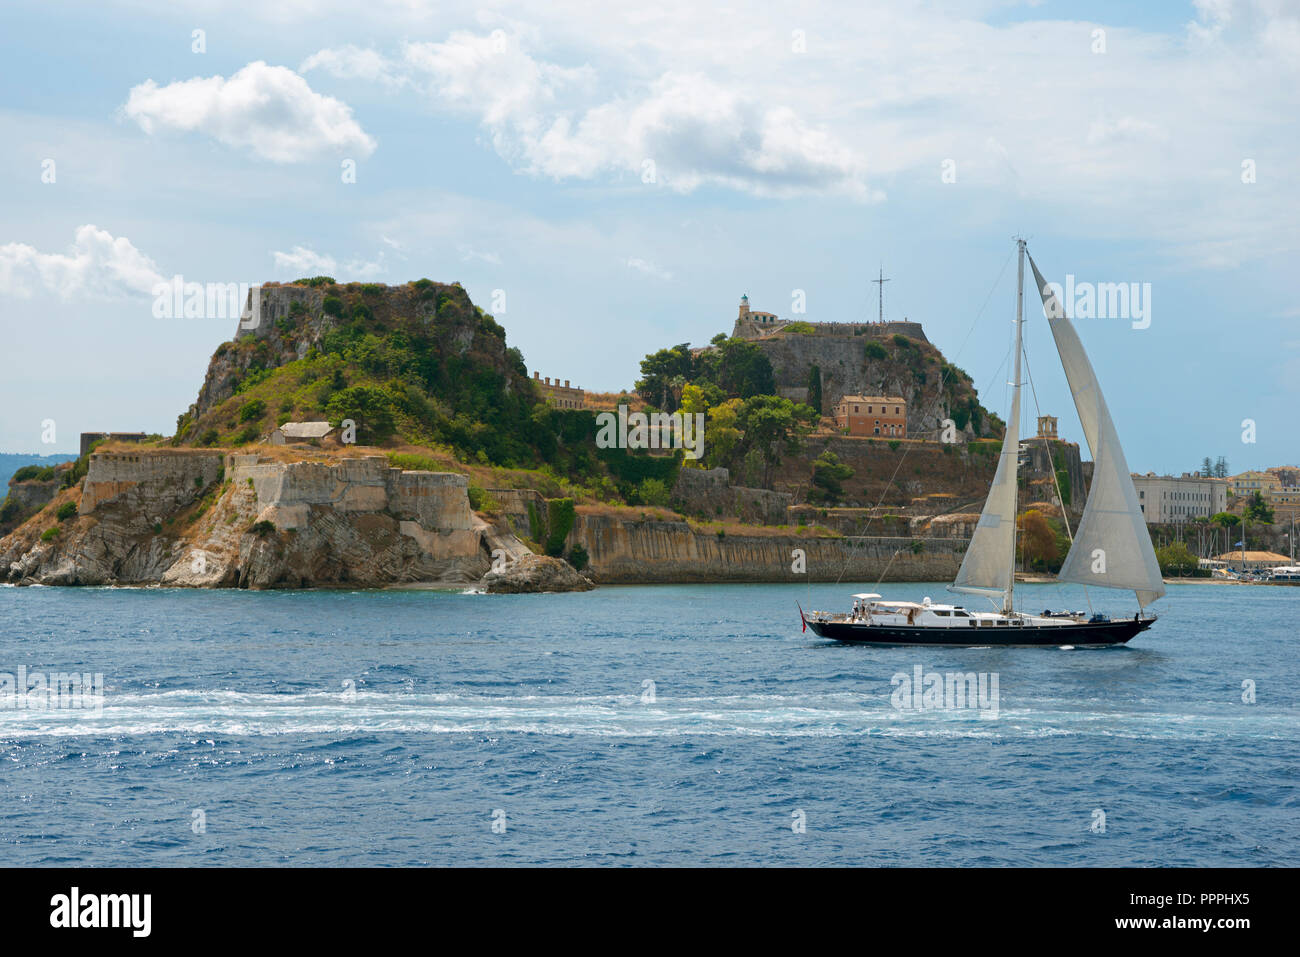 Sailboat and view to old fortress, Corfu, Corfu, Greece - Stock Image